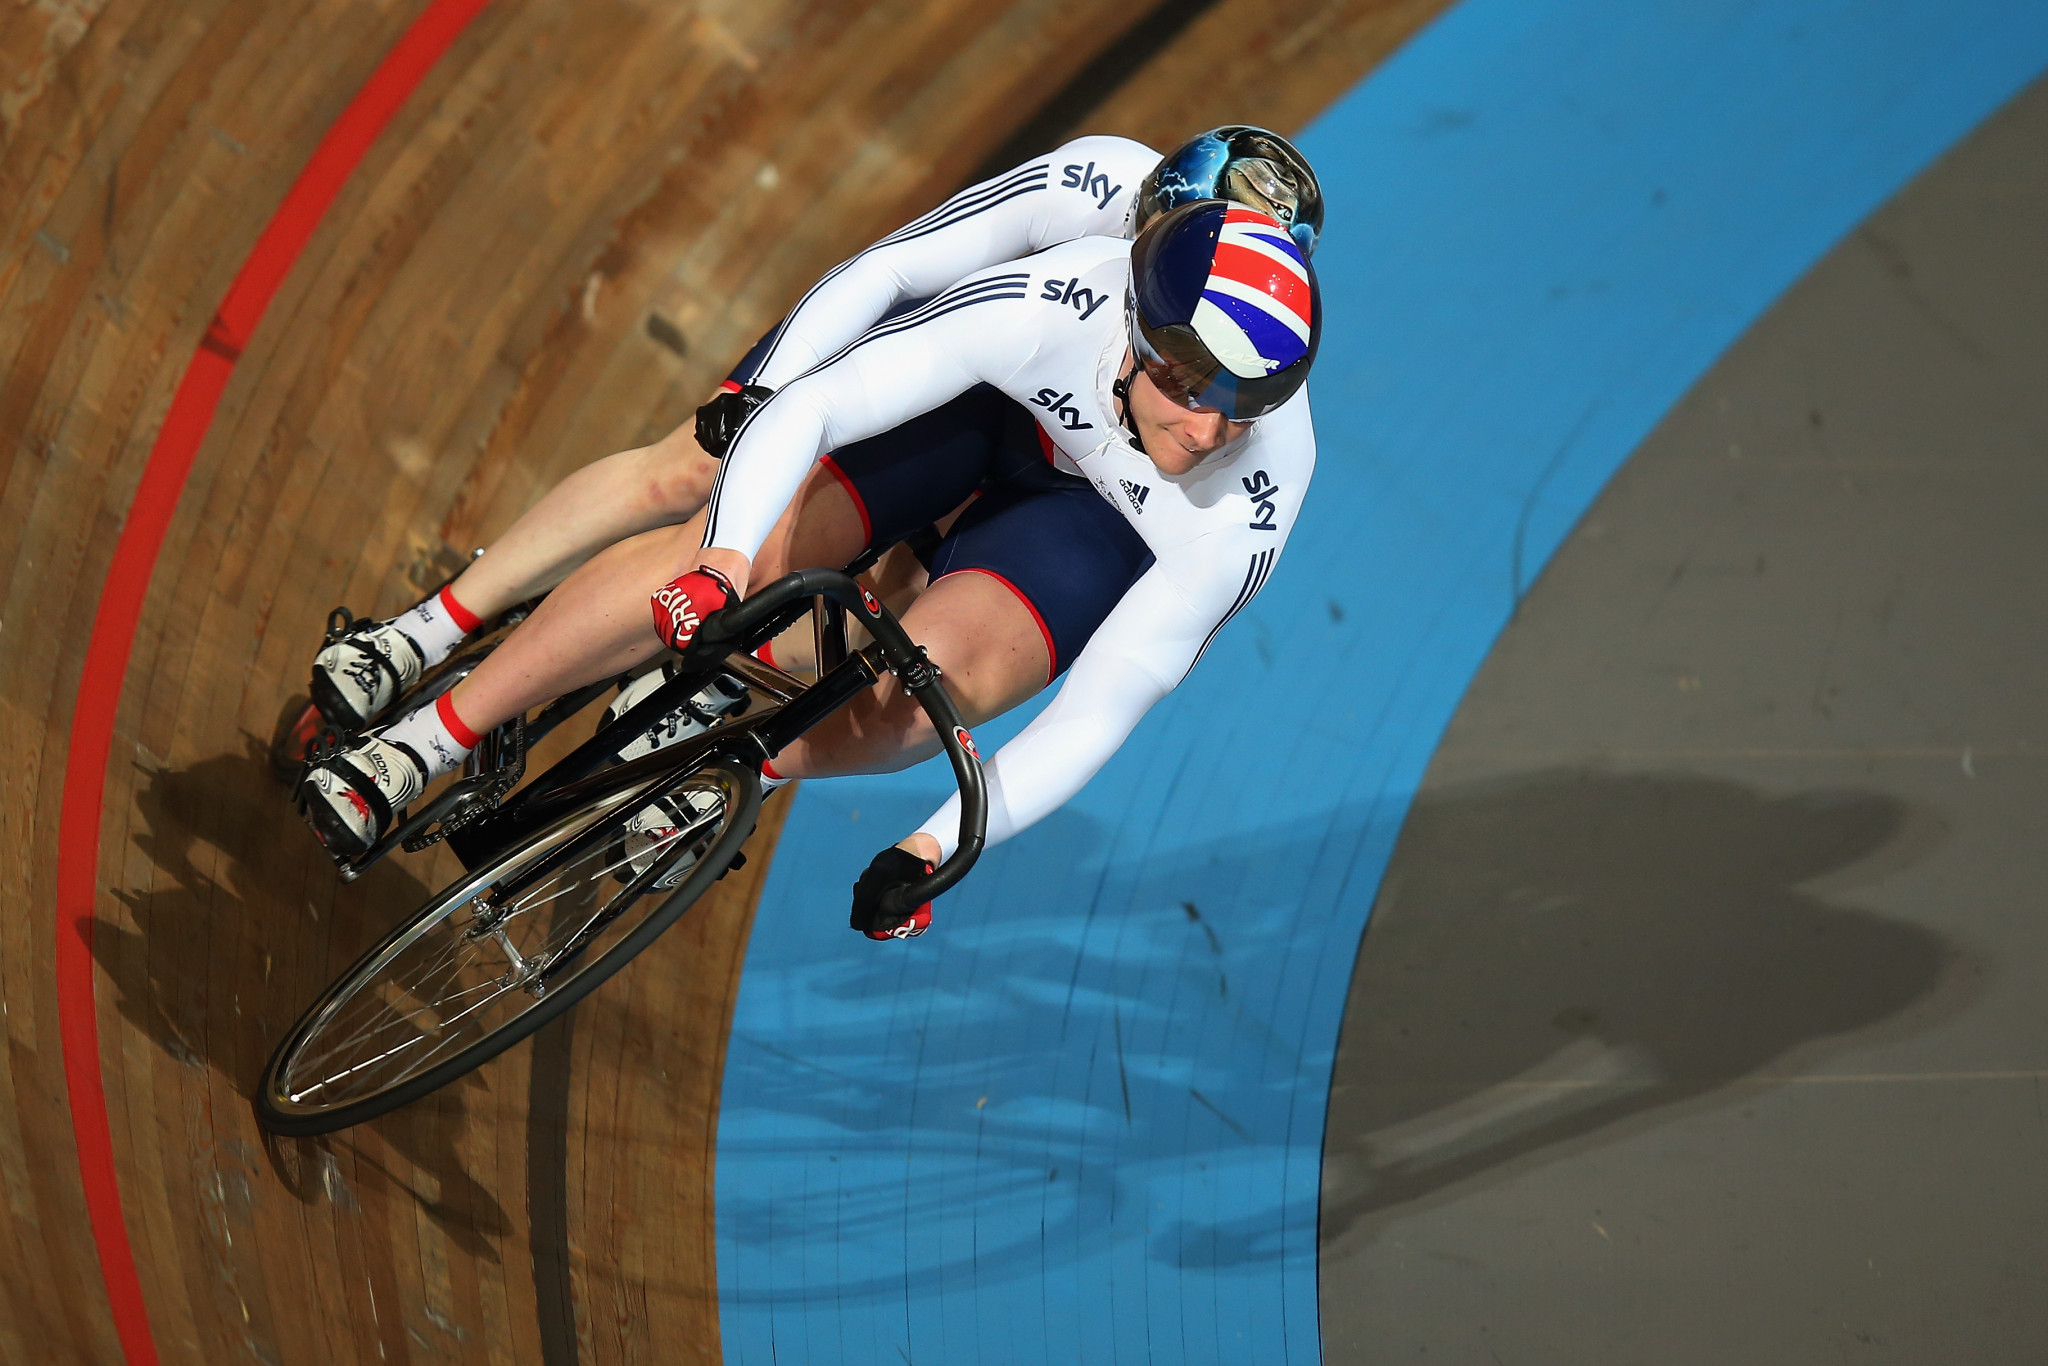 British Cycling announce formation of Rider Representative Commission to aid improvements to athlete welfare